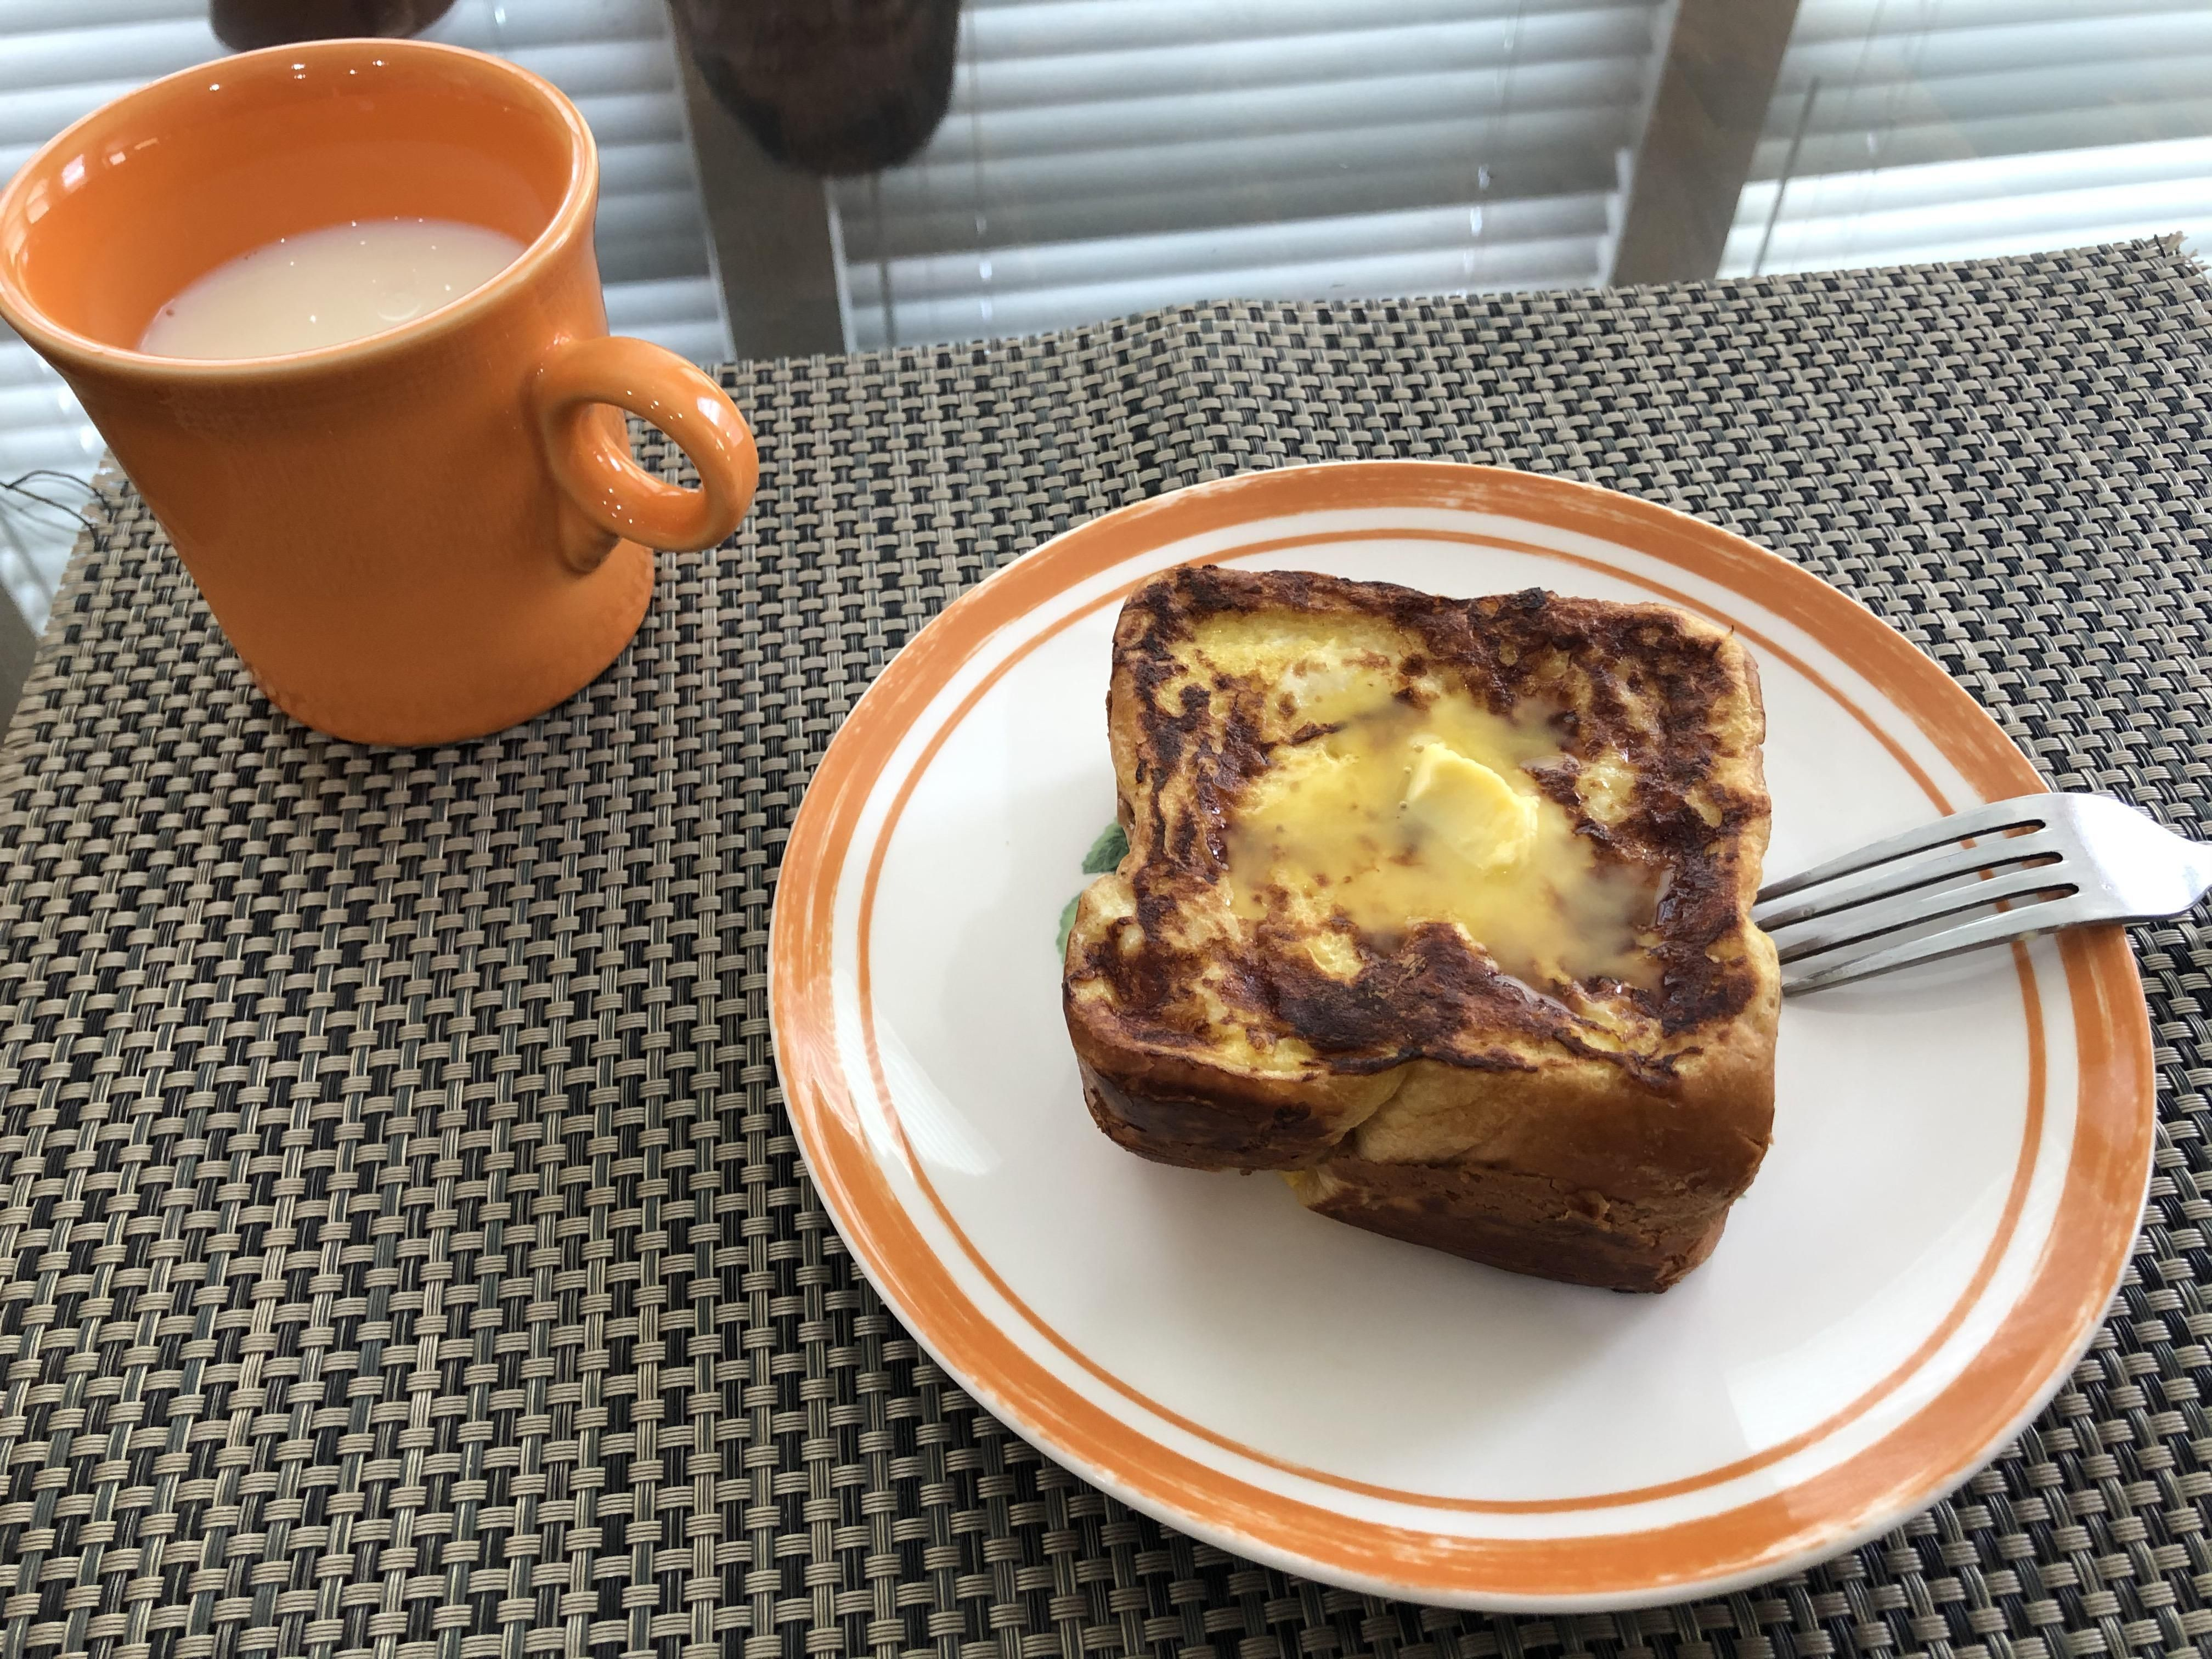 [Homemade] Hong Kong style French Toast (peanut butter in the middle) for my sis #food #foods